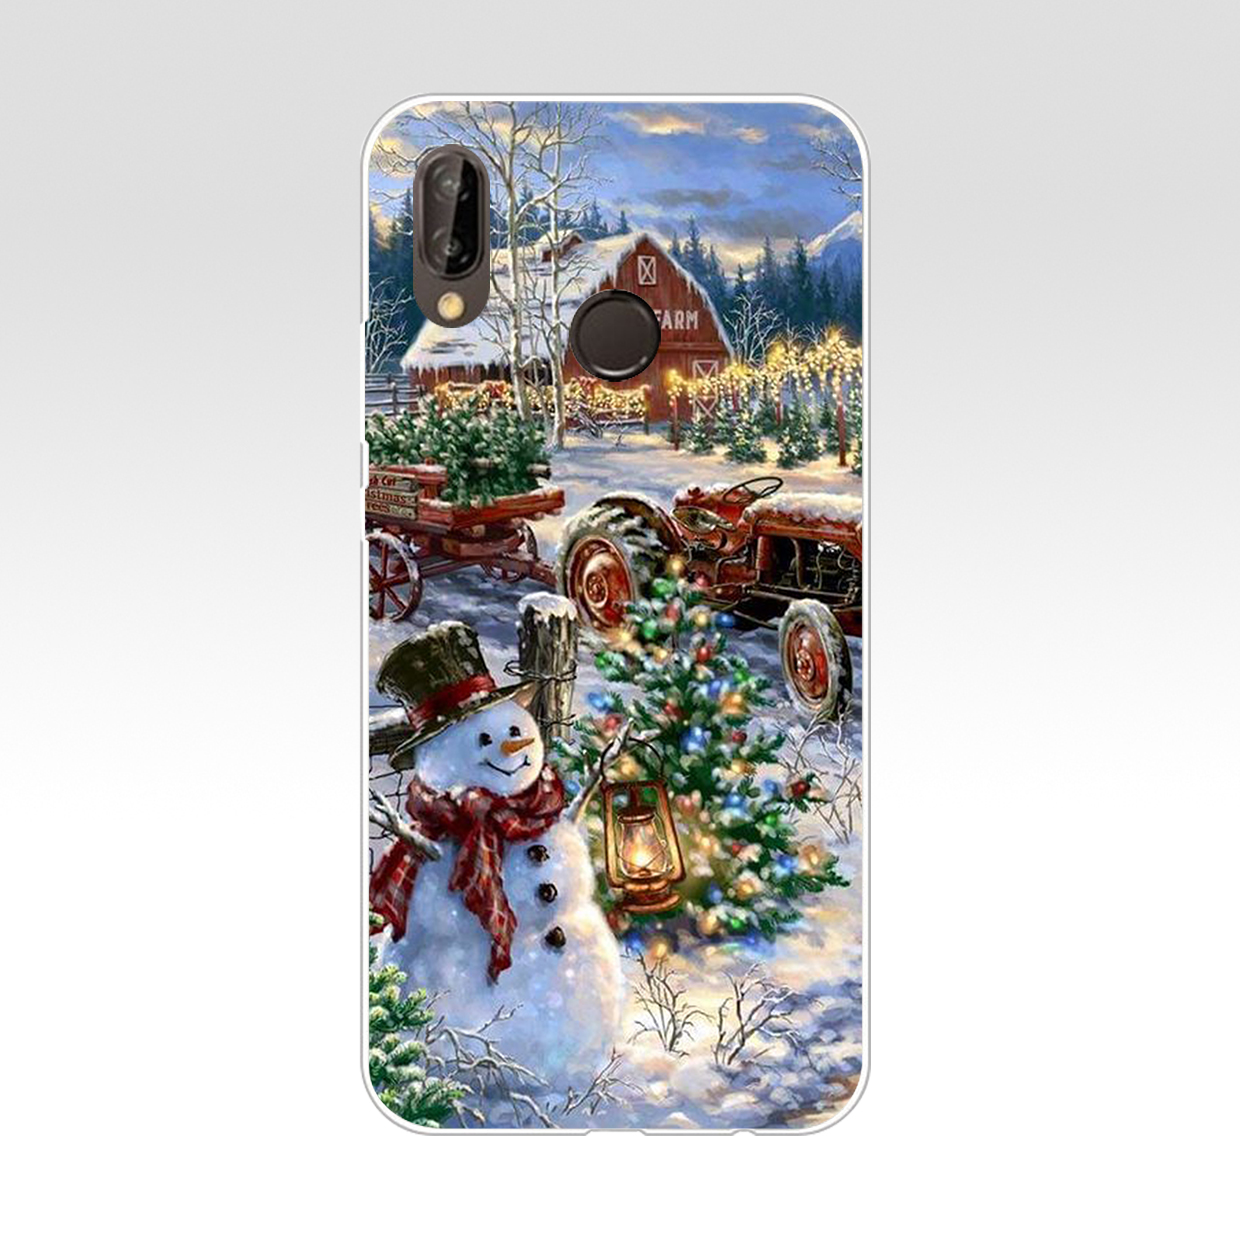 071AA Happy New Year Merry Christmas Flakes Hard Transparent Cover Case For Huawei P8 P20 Honor 9 Lite Mate 10 Pro Y6 Y5 2017